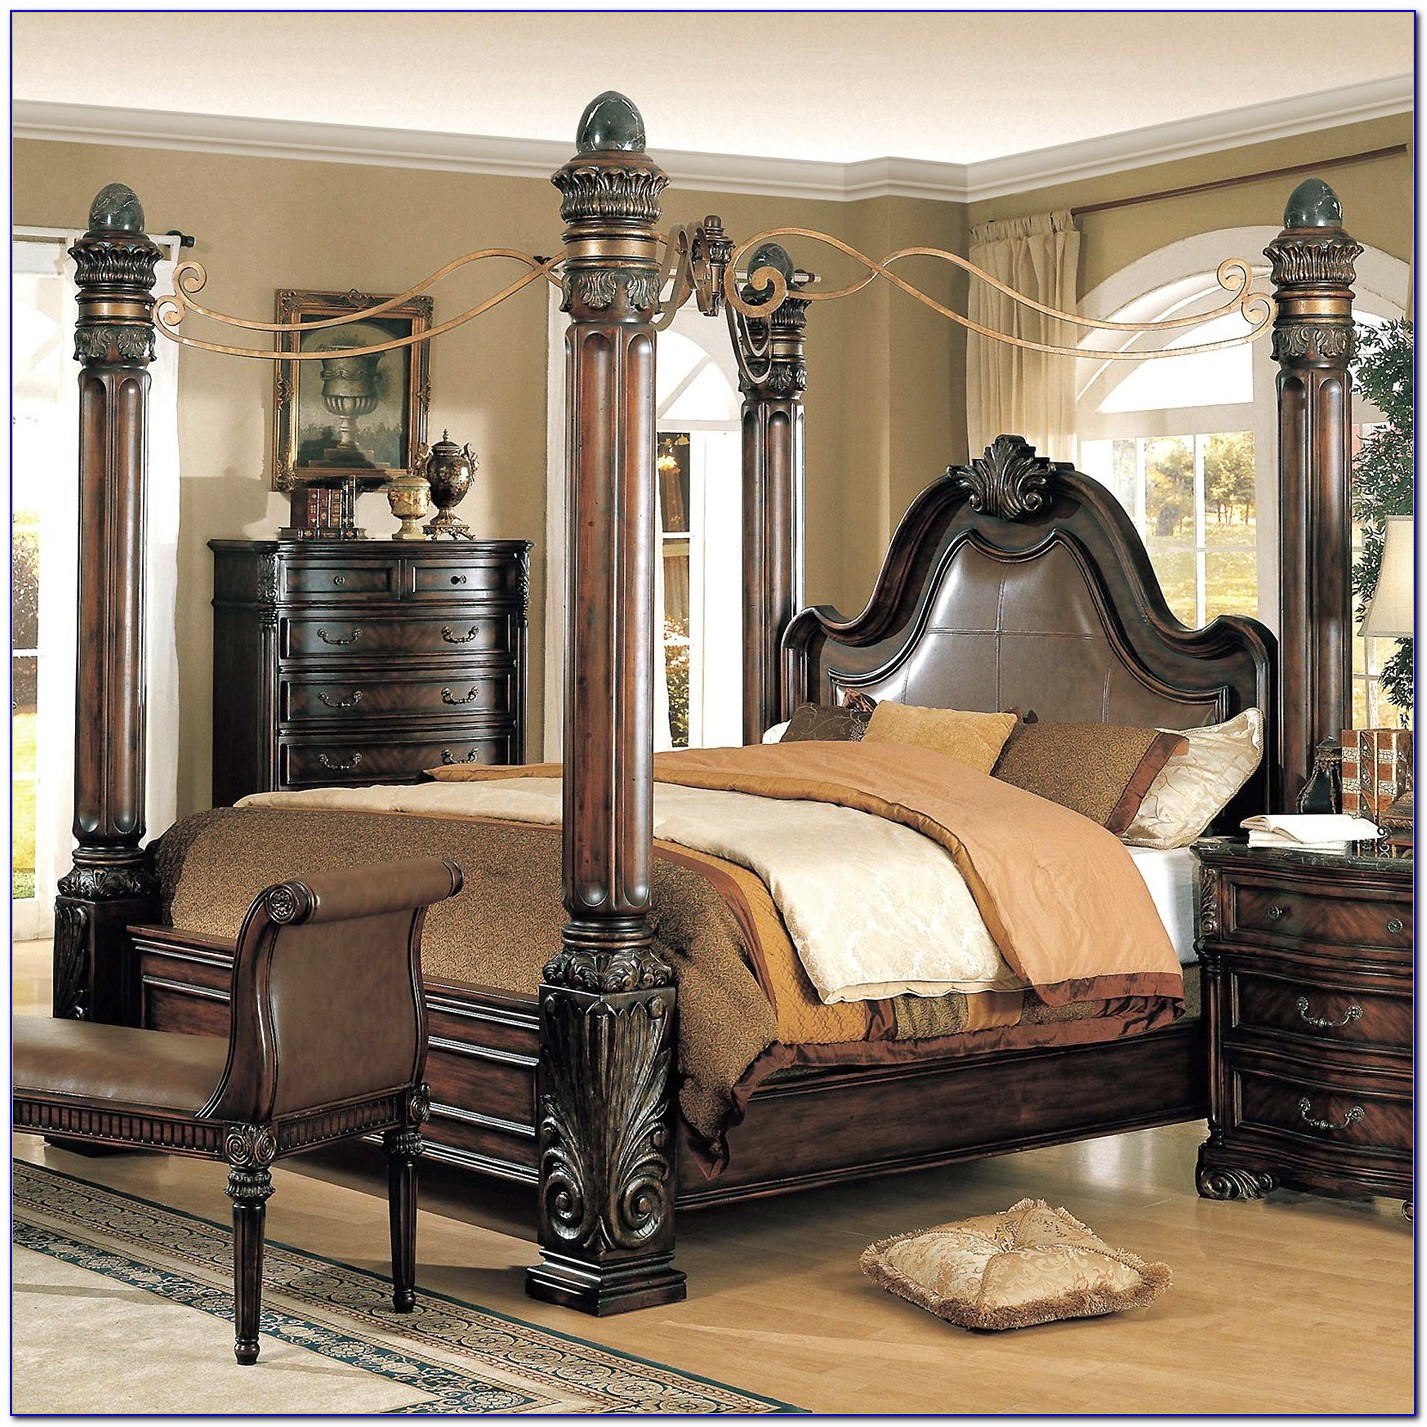 4 Post Bedroom Furniture Sets Bedroom Home Design Ideas